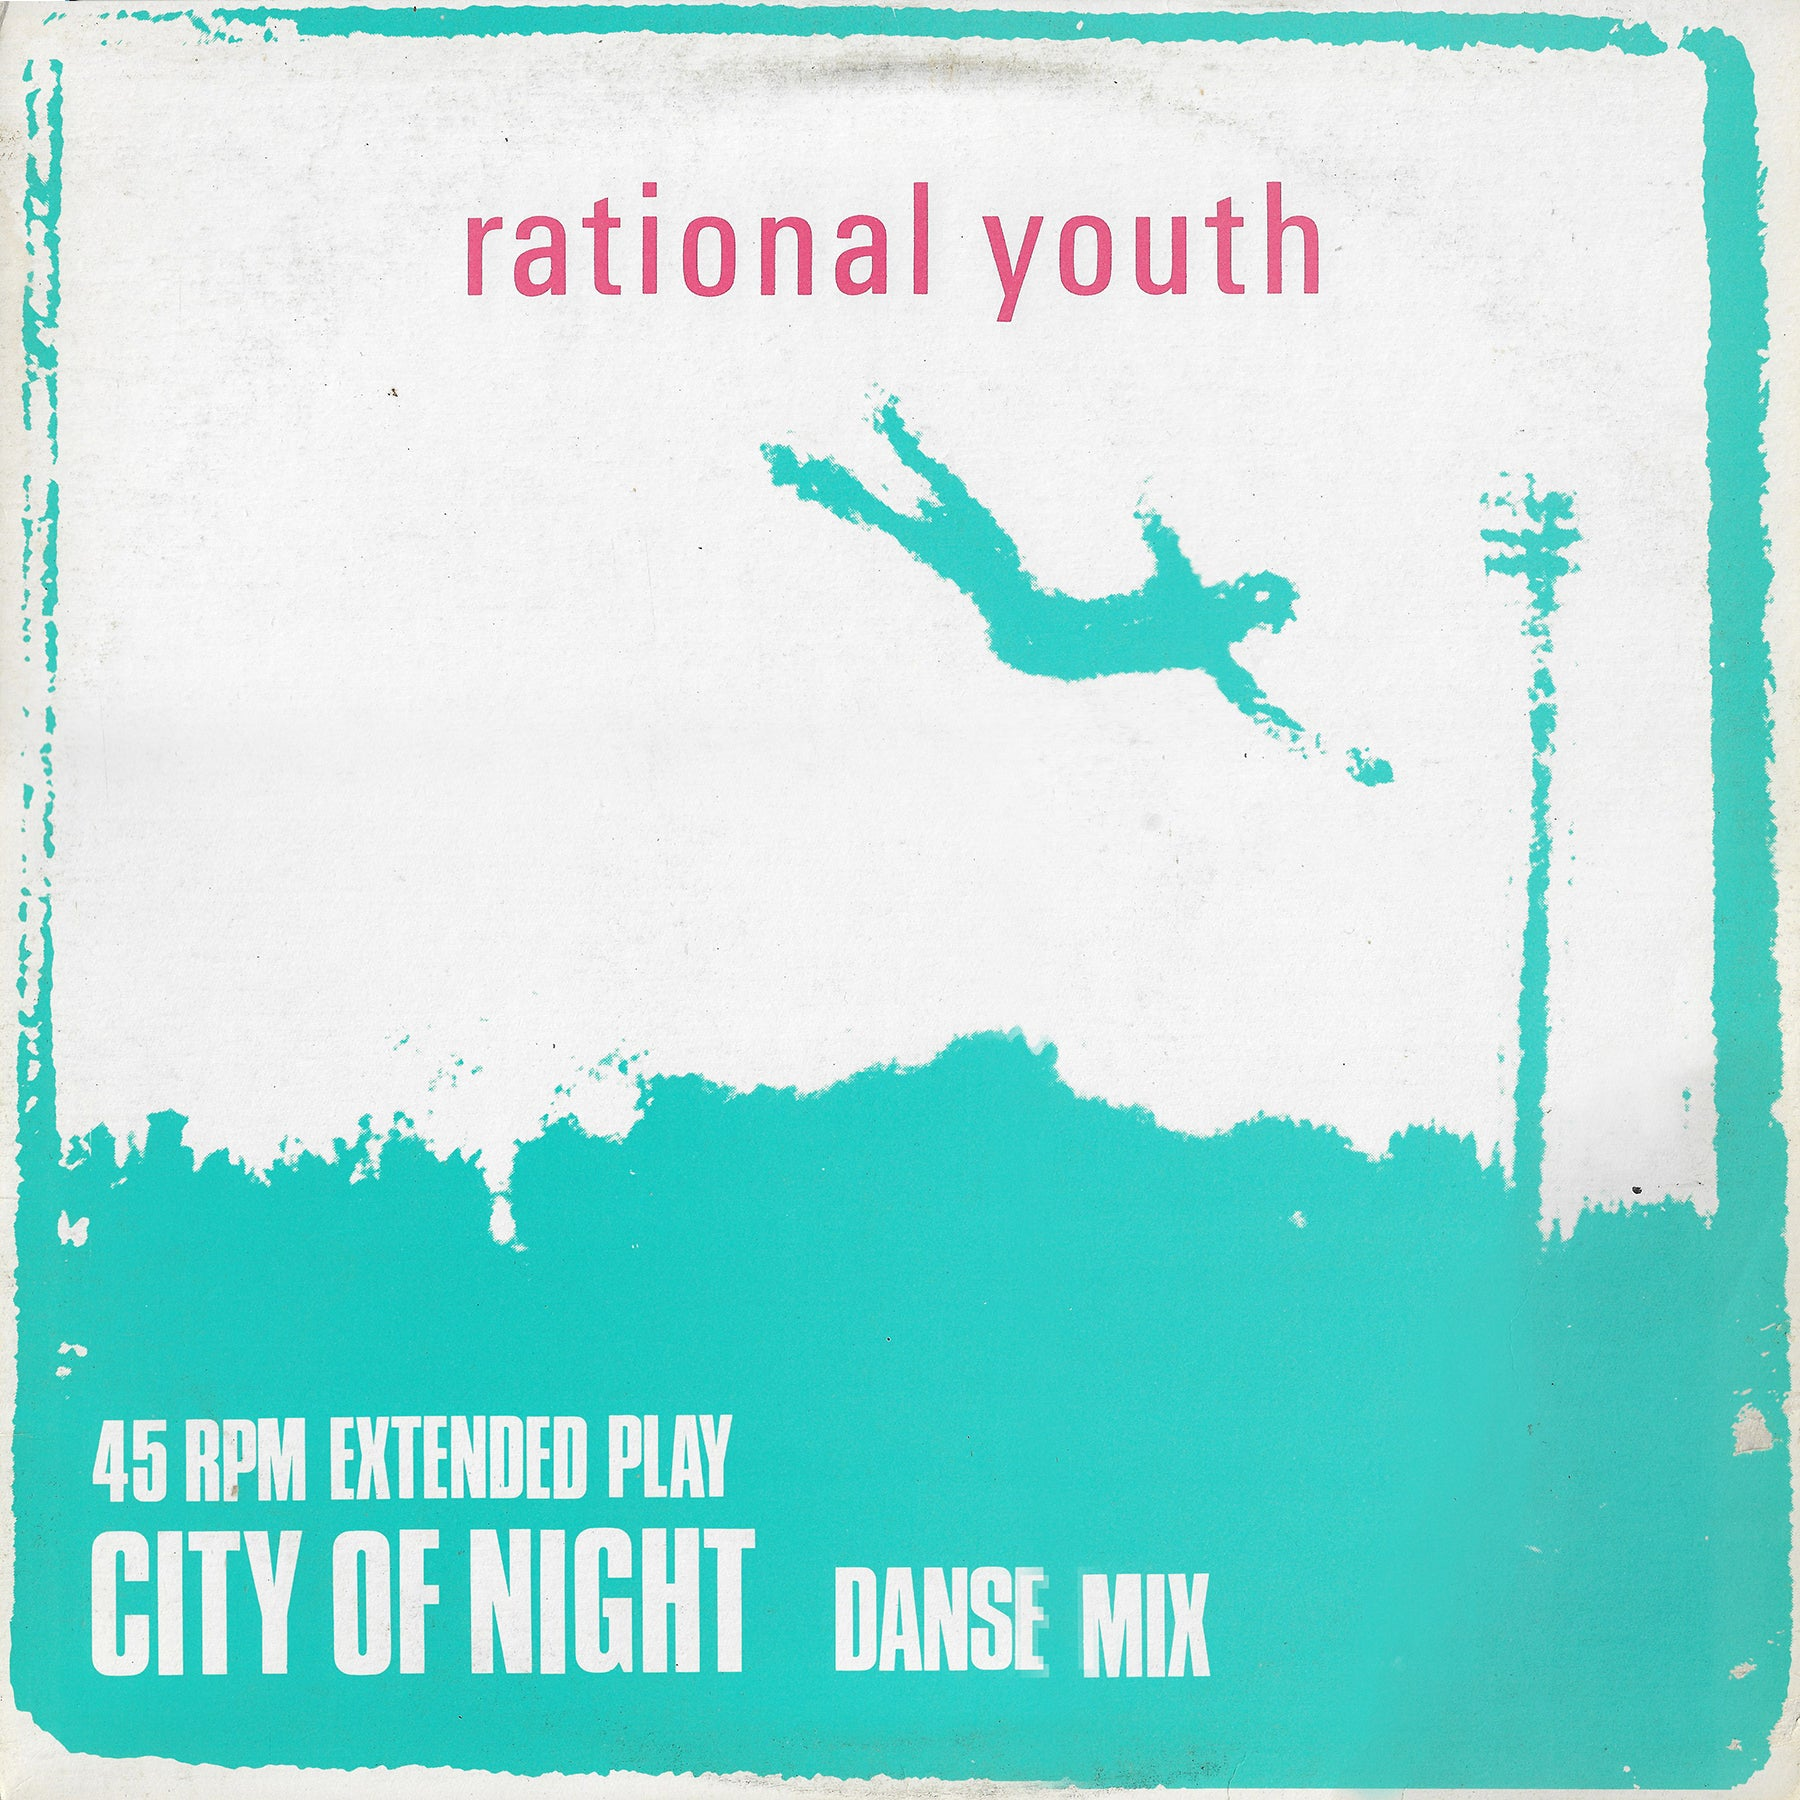 Rational Youth - City Of Night (Danse Mix)